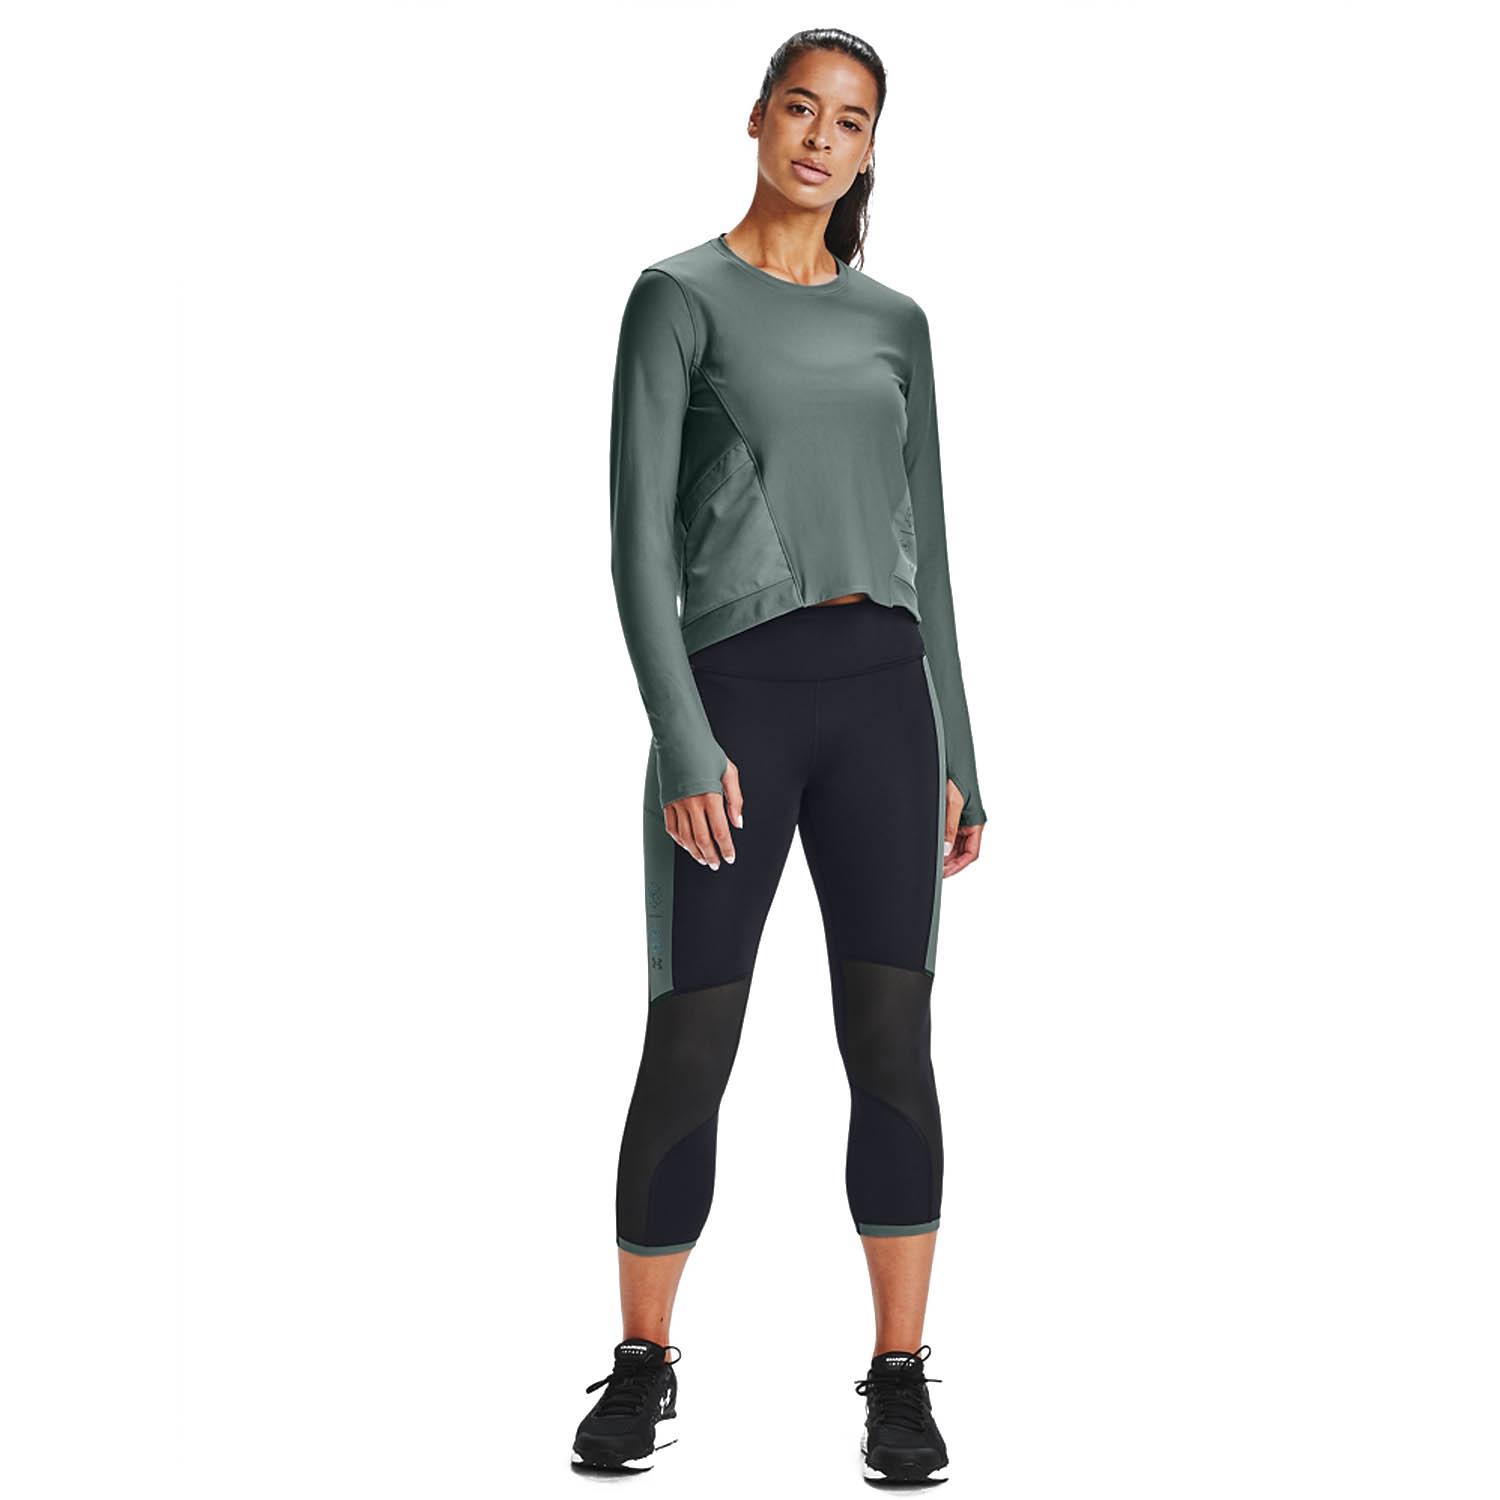 Under Armour Run Anywhere Crop Tights - Black/Reflective